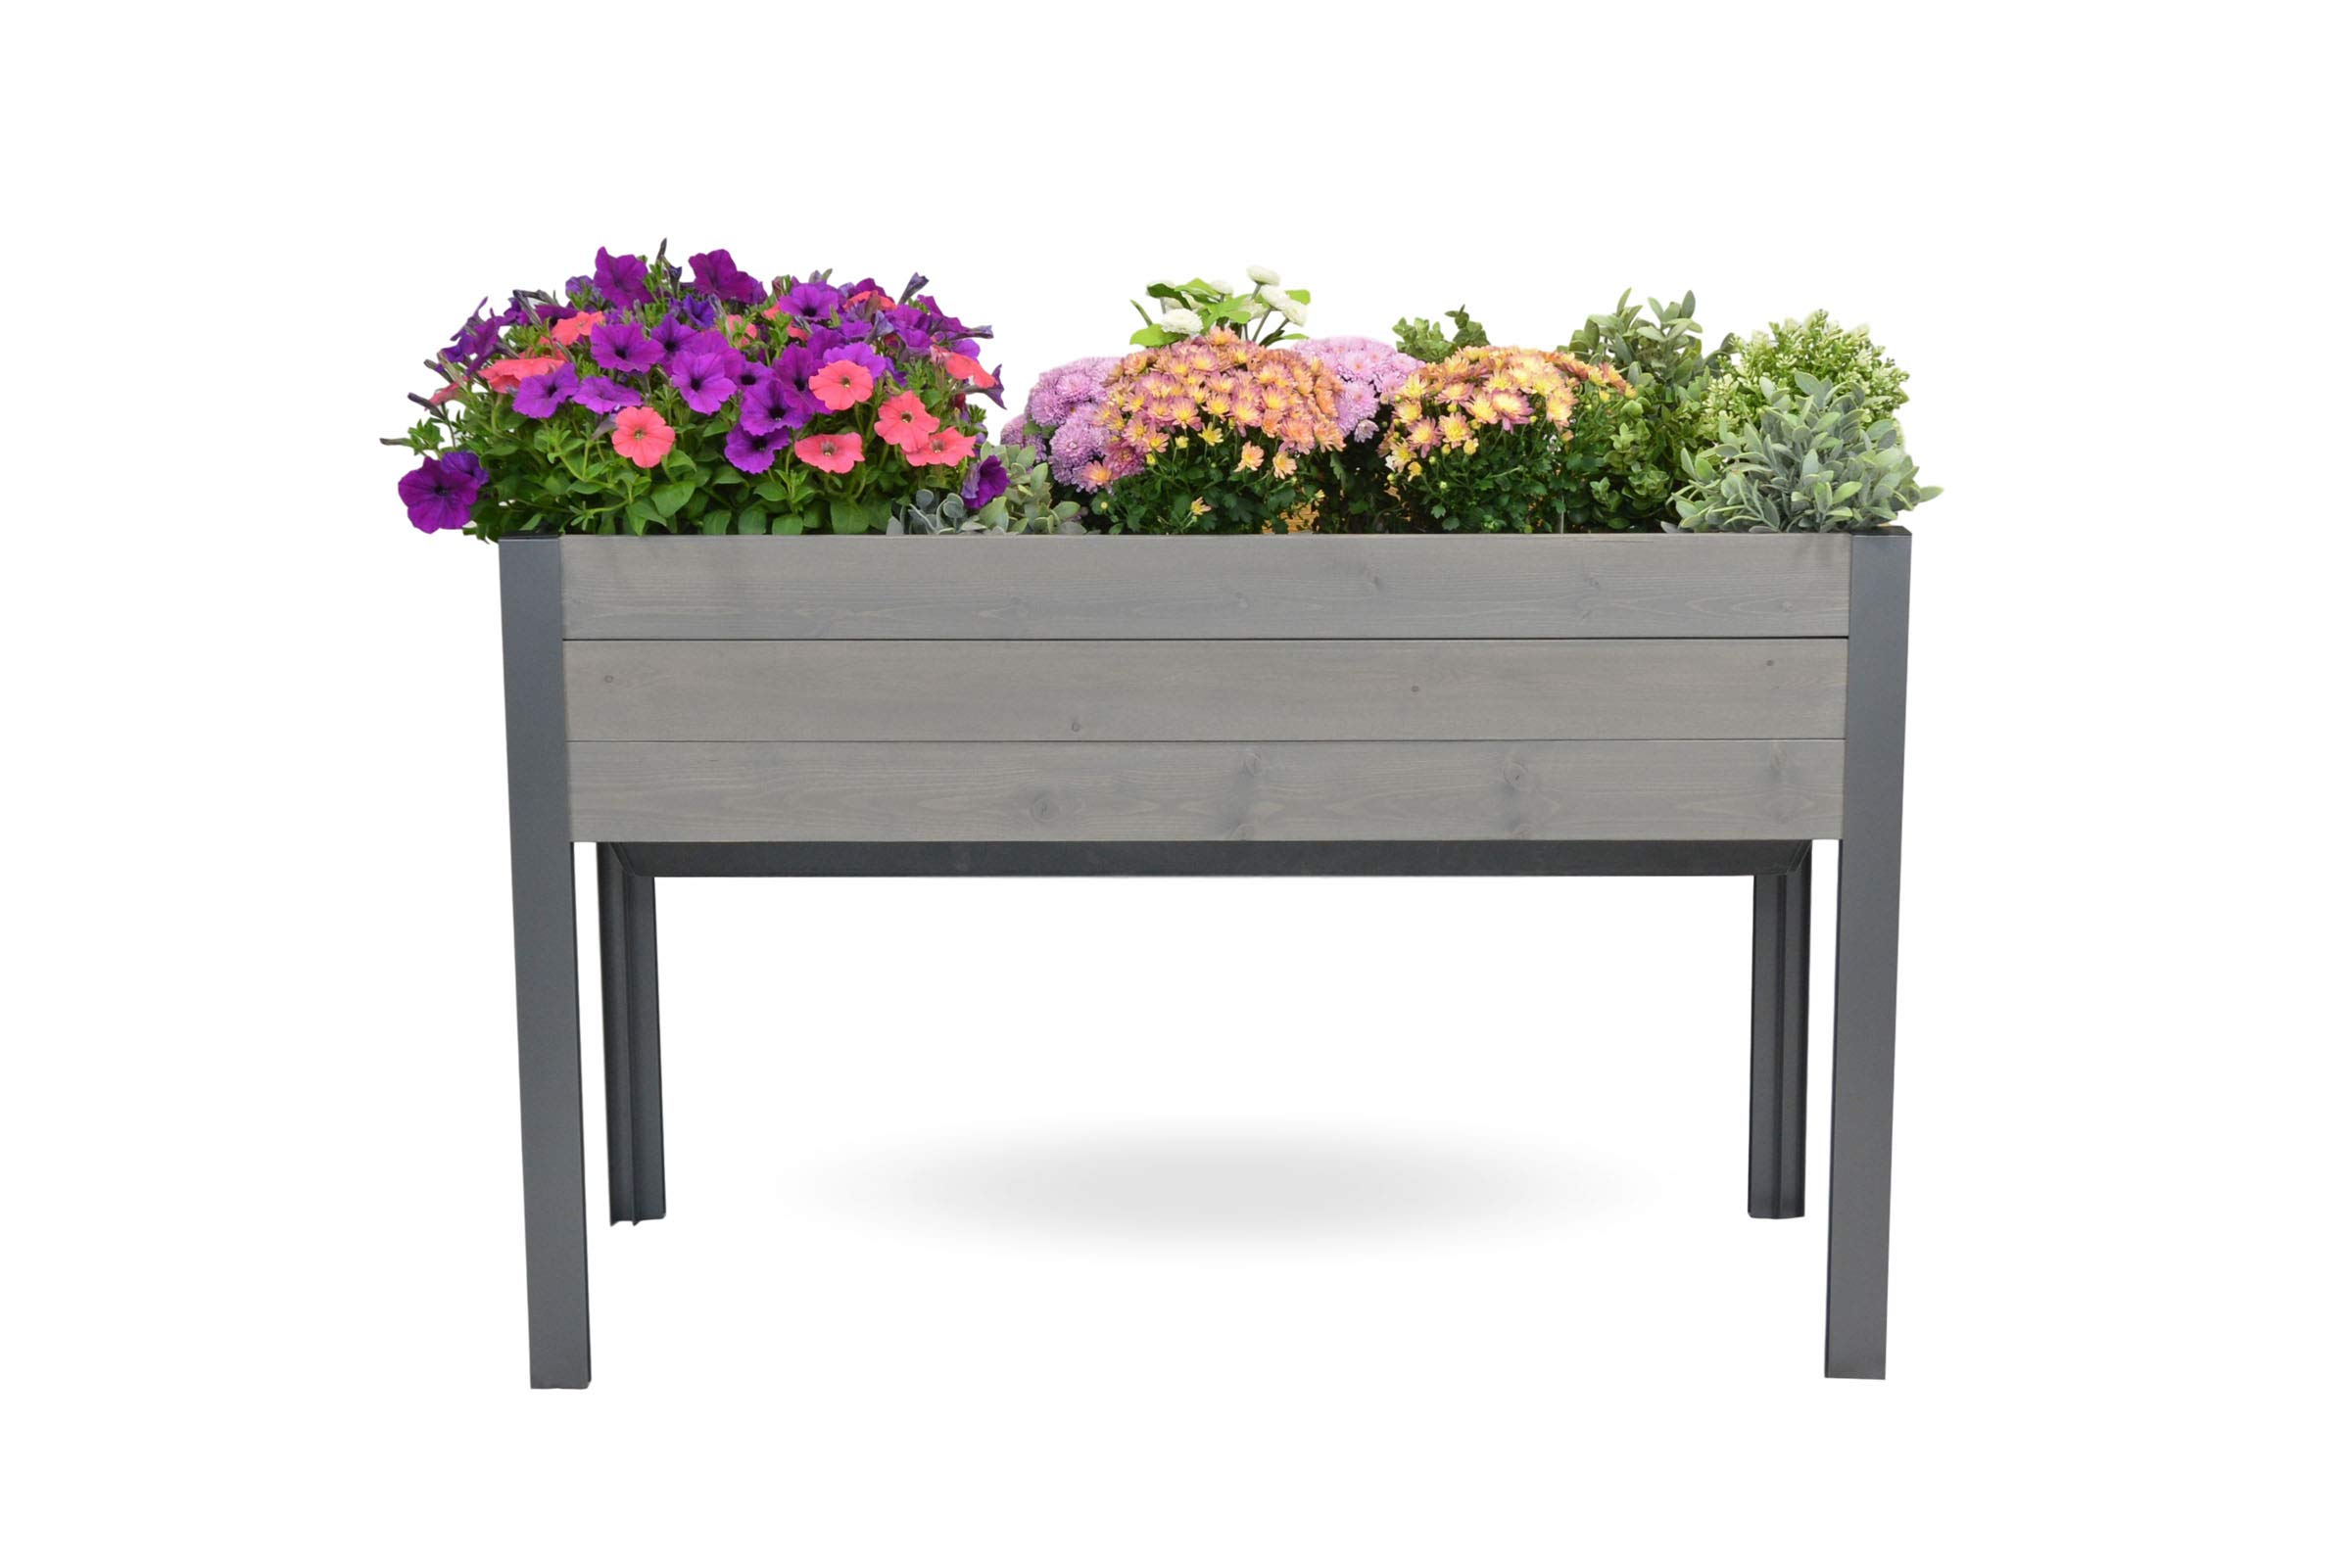 CedarCraft Self-Watering Elevated Spruce Planter (21'' x 47'' x 29''H) - The Flexibility of Container Gardening + The Convenience of a self-Watering System. Grow Healthier, More Productive Plants.